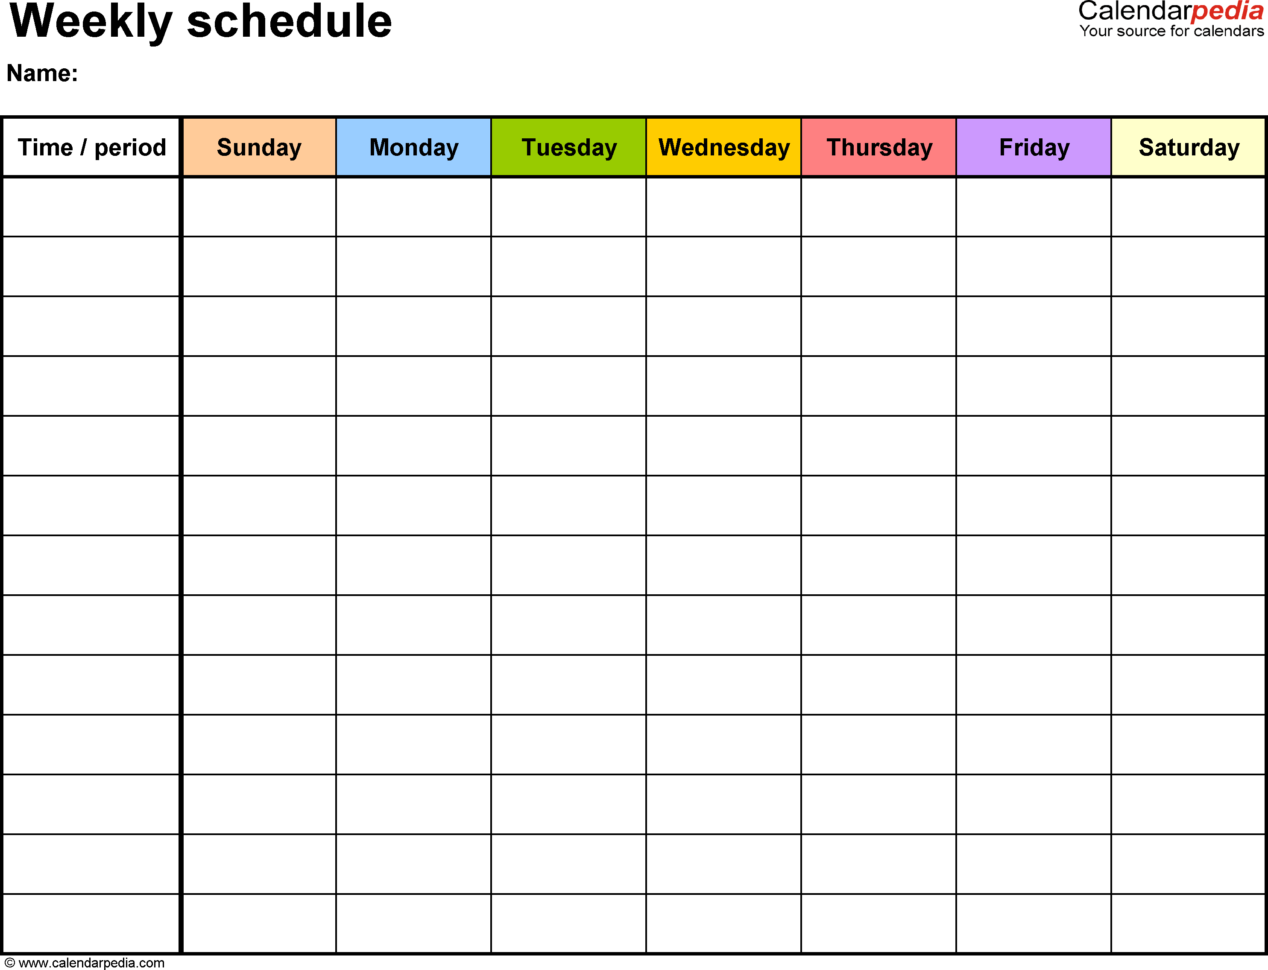 Hourly Time Tracking Spreadsheet For Free Weekly Schedule Templates For Excel  18 Templates